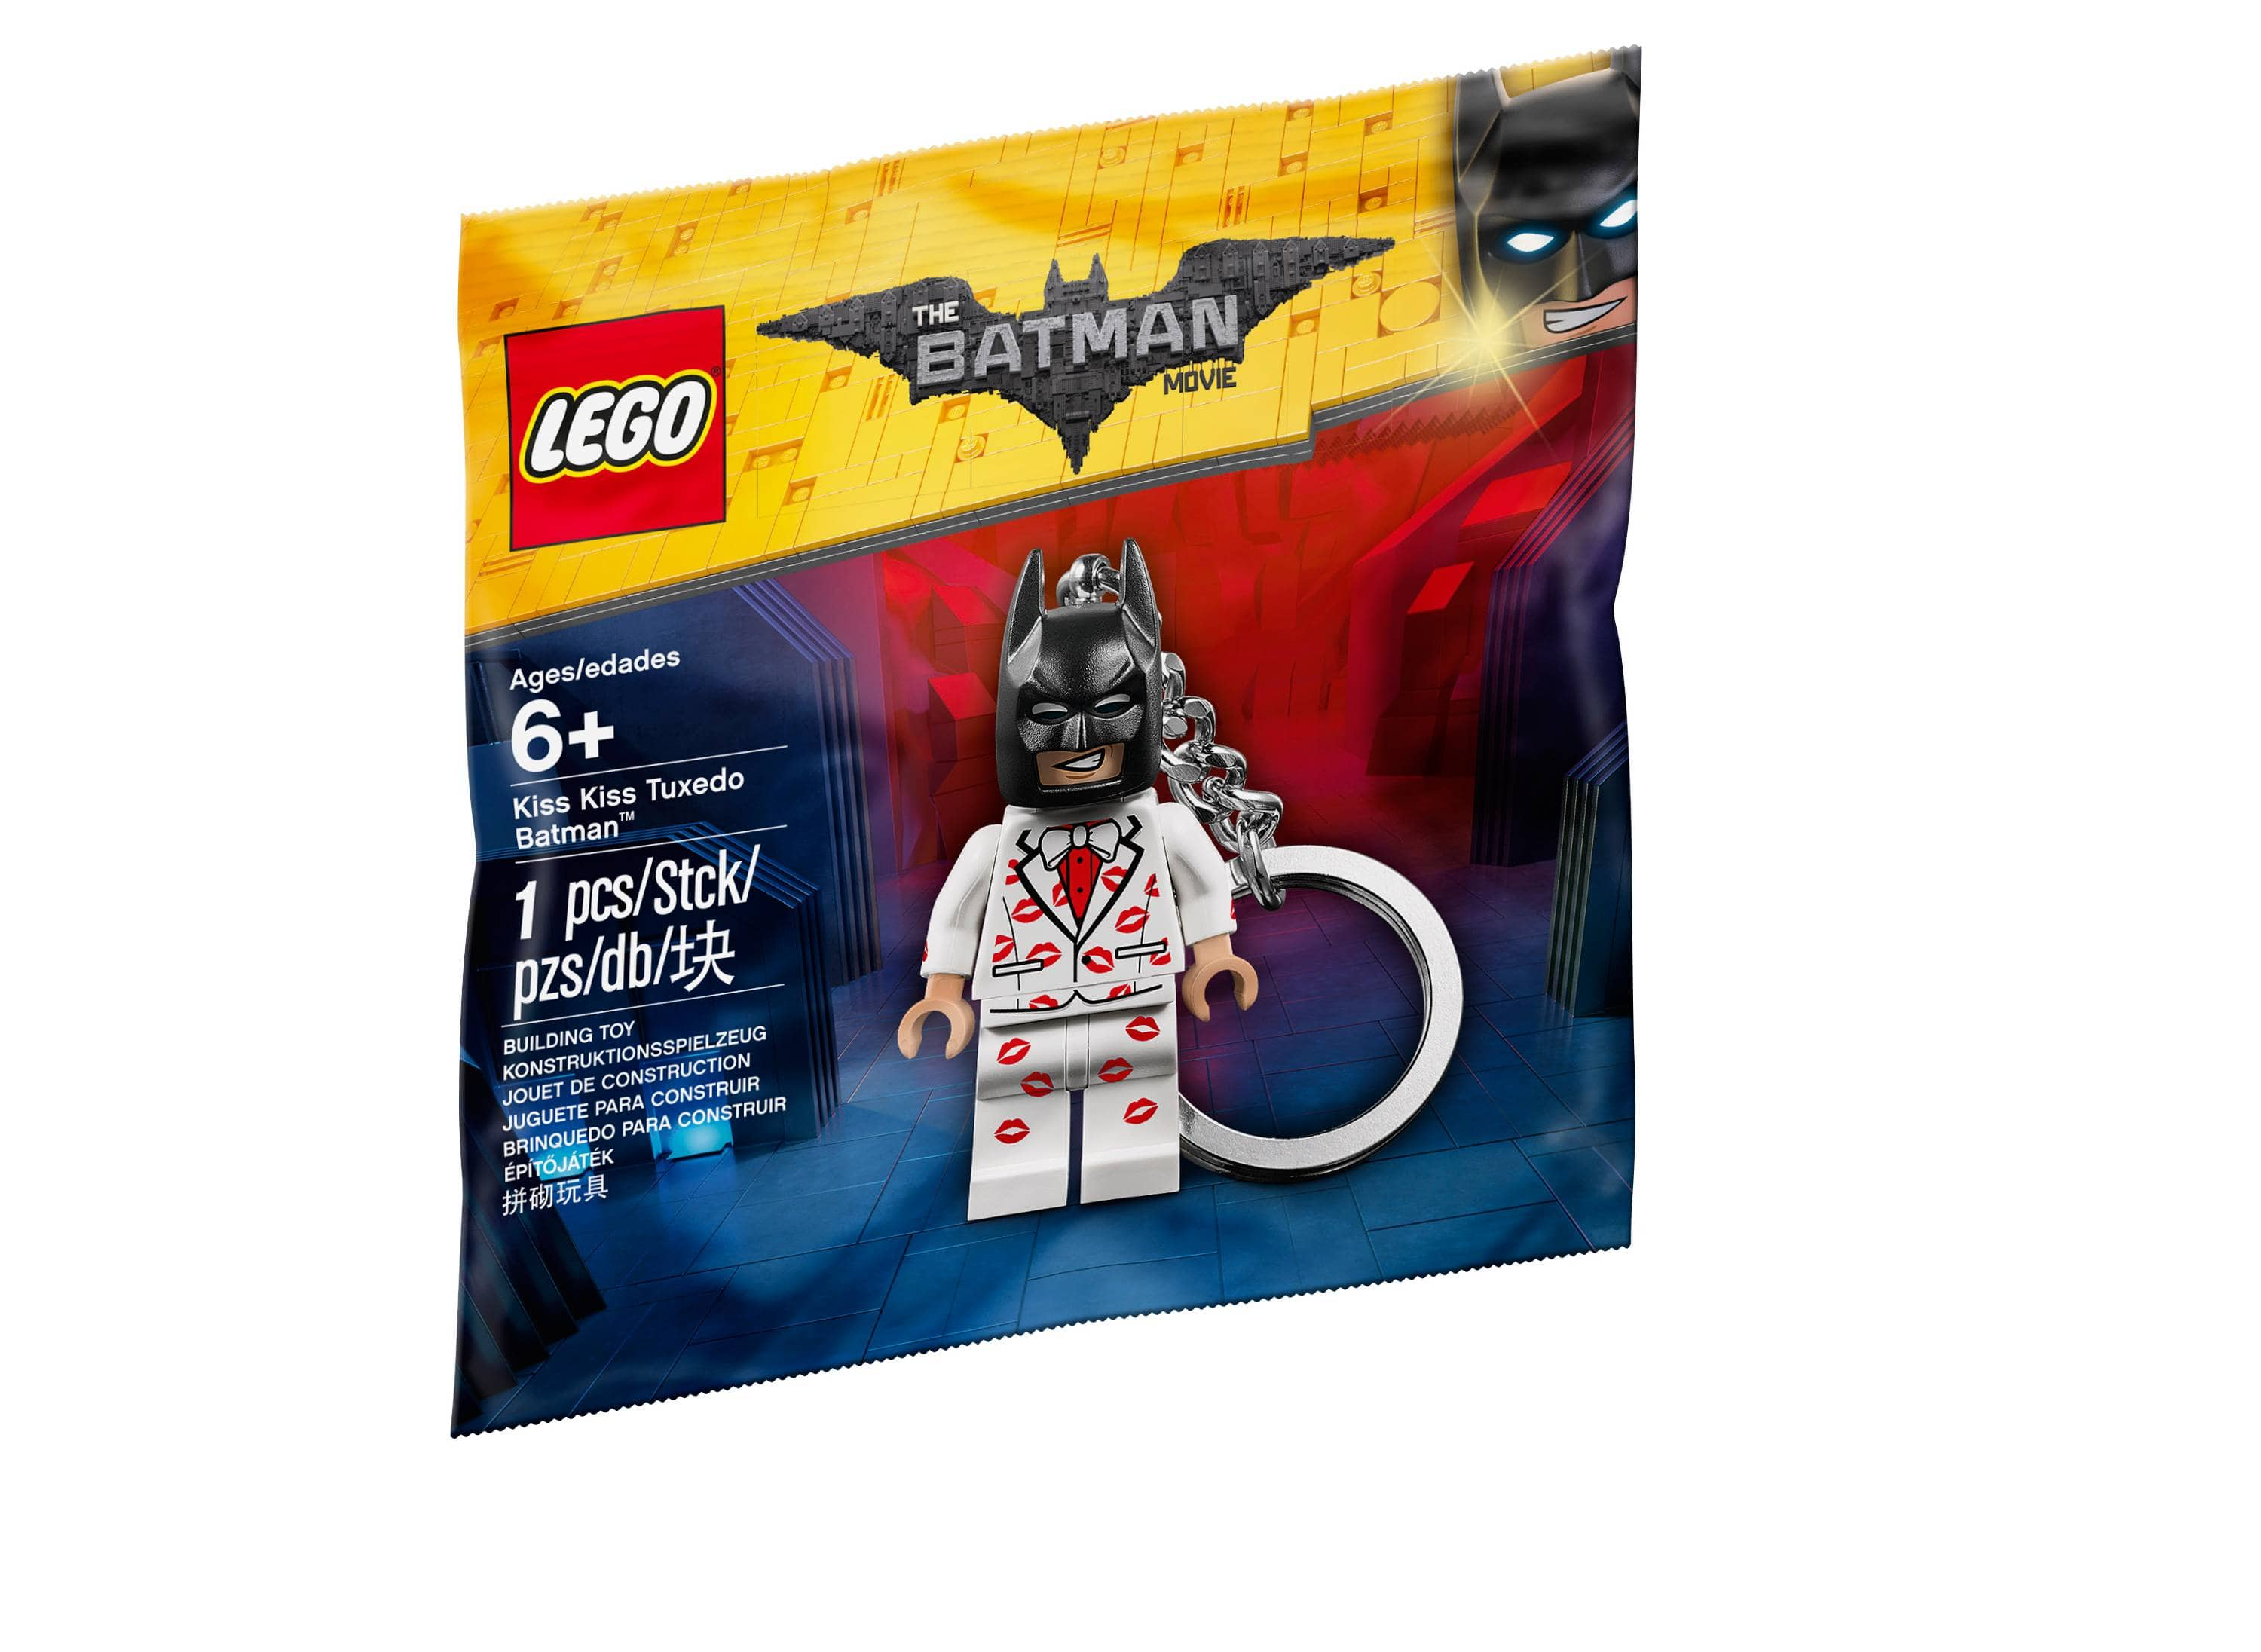 Lego Batman Movie Kiss Kiss Tuxedo Key Chain 5004928 $5.99